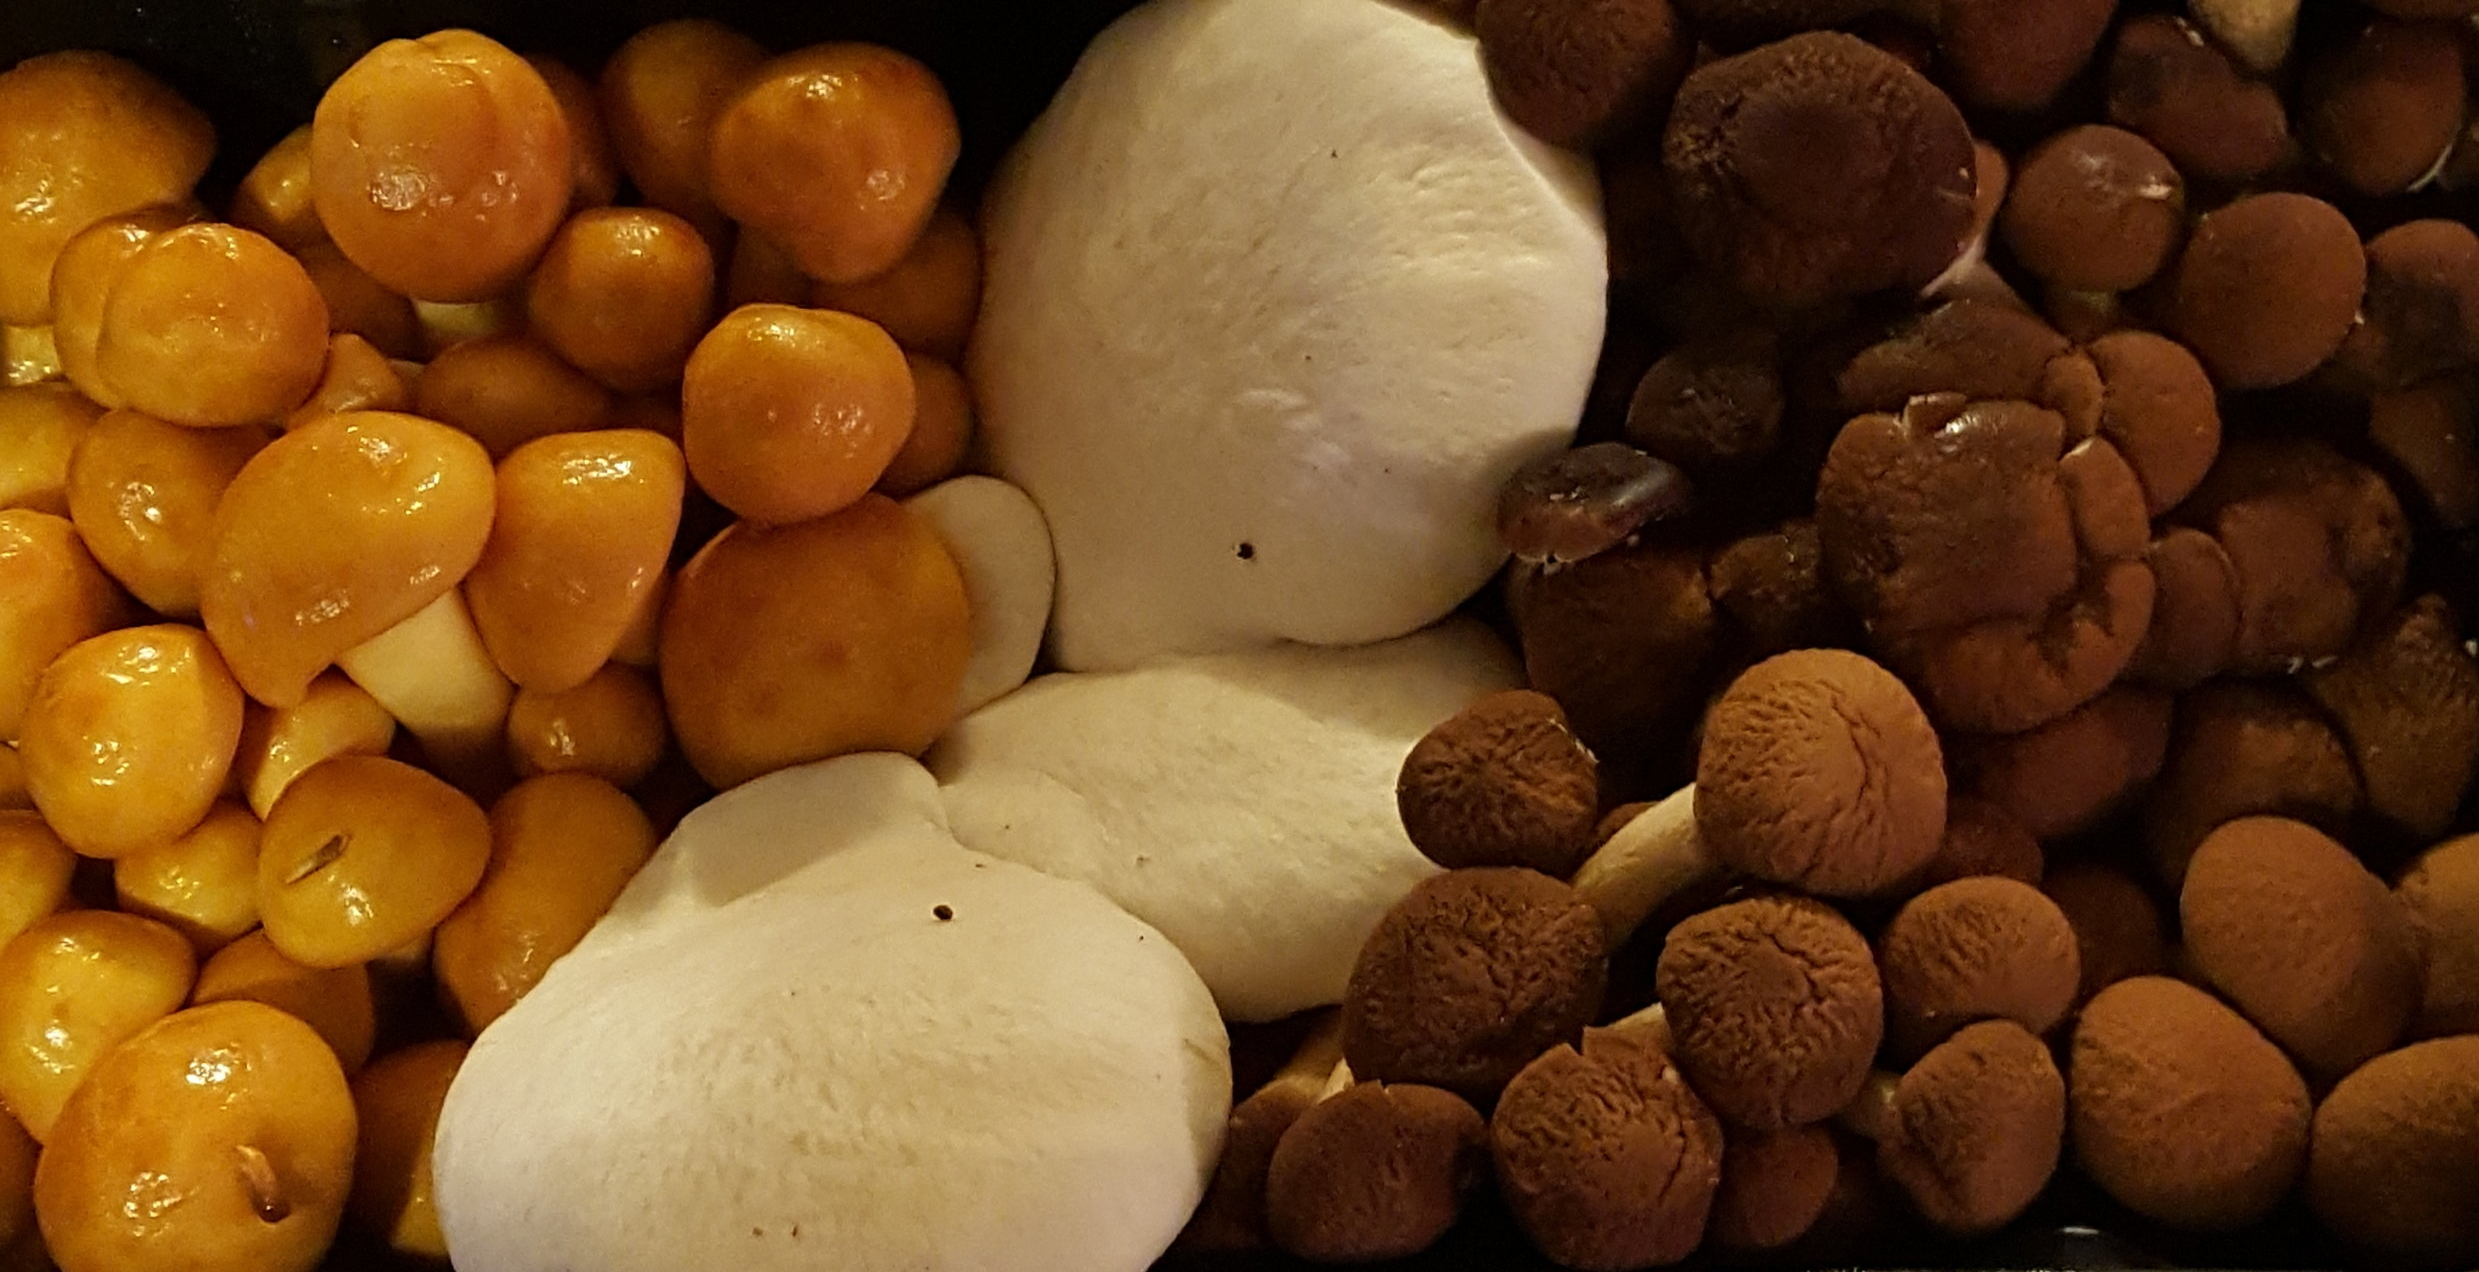 I found this assortment of mixed mushrooms at Whole Foods OKC